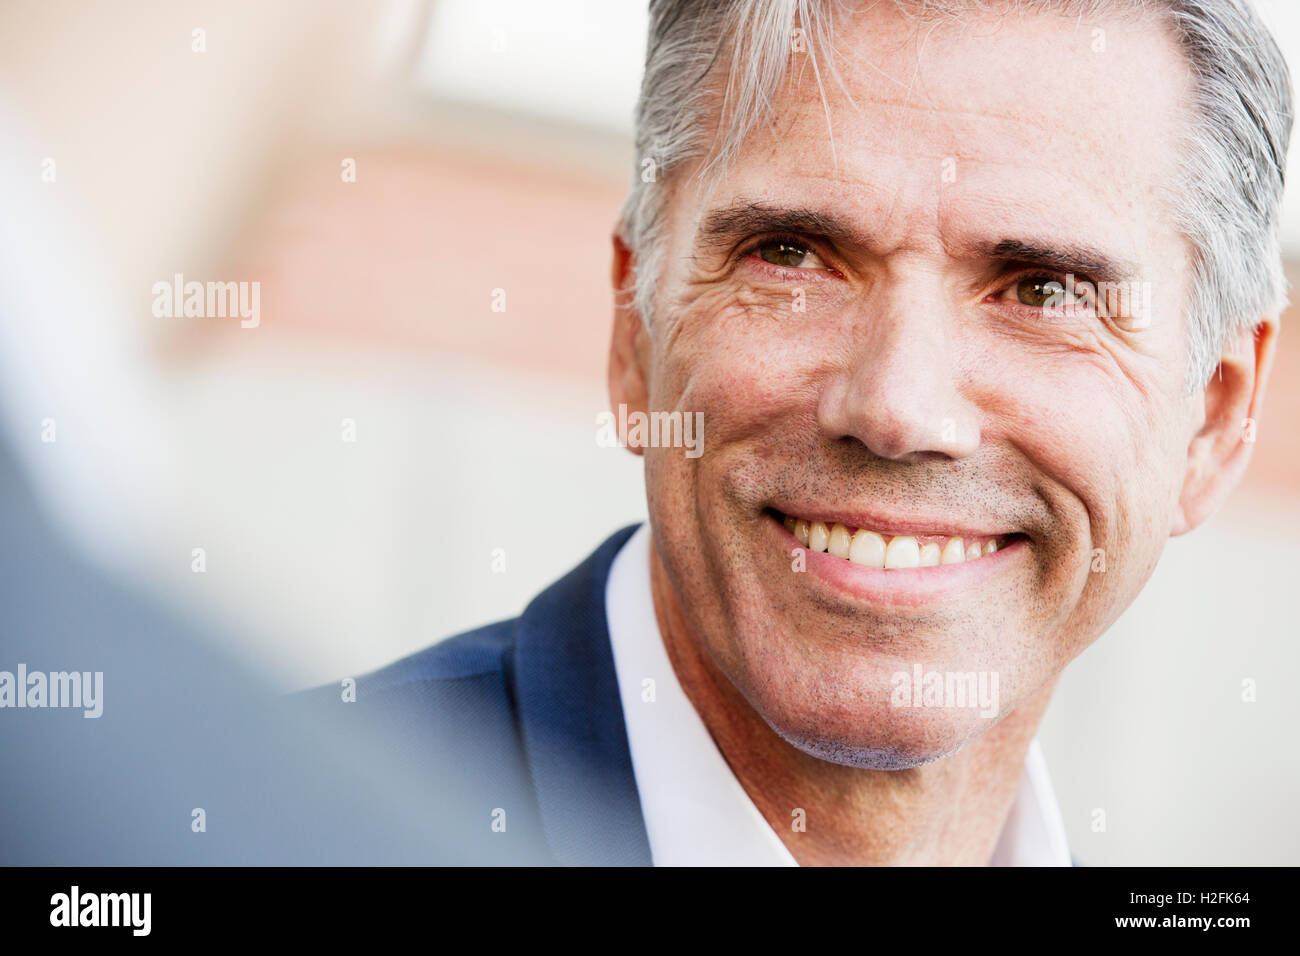 A man in a white shirt with grey hair, smiling, his head turned to speak to another person . - Stock Image